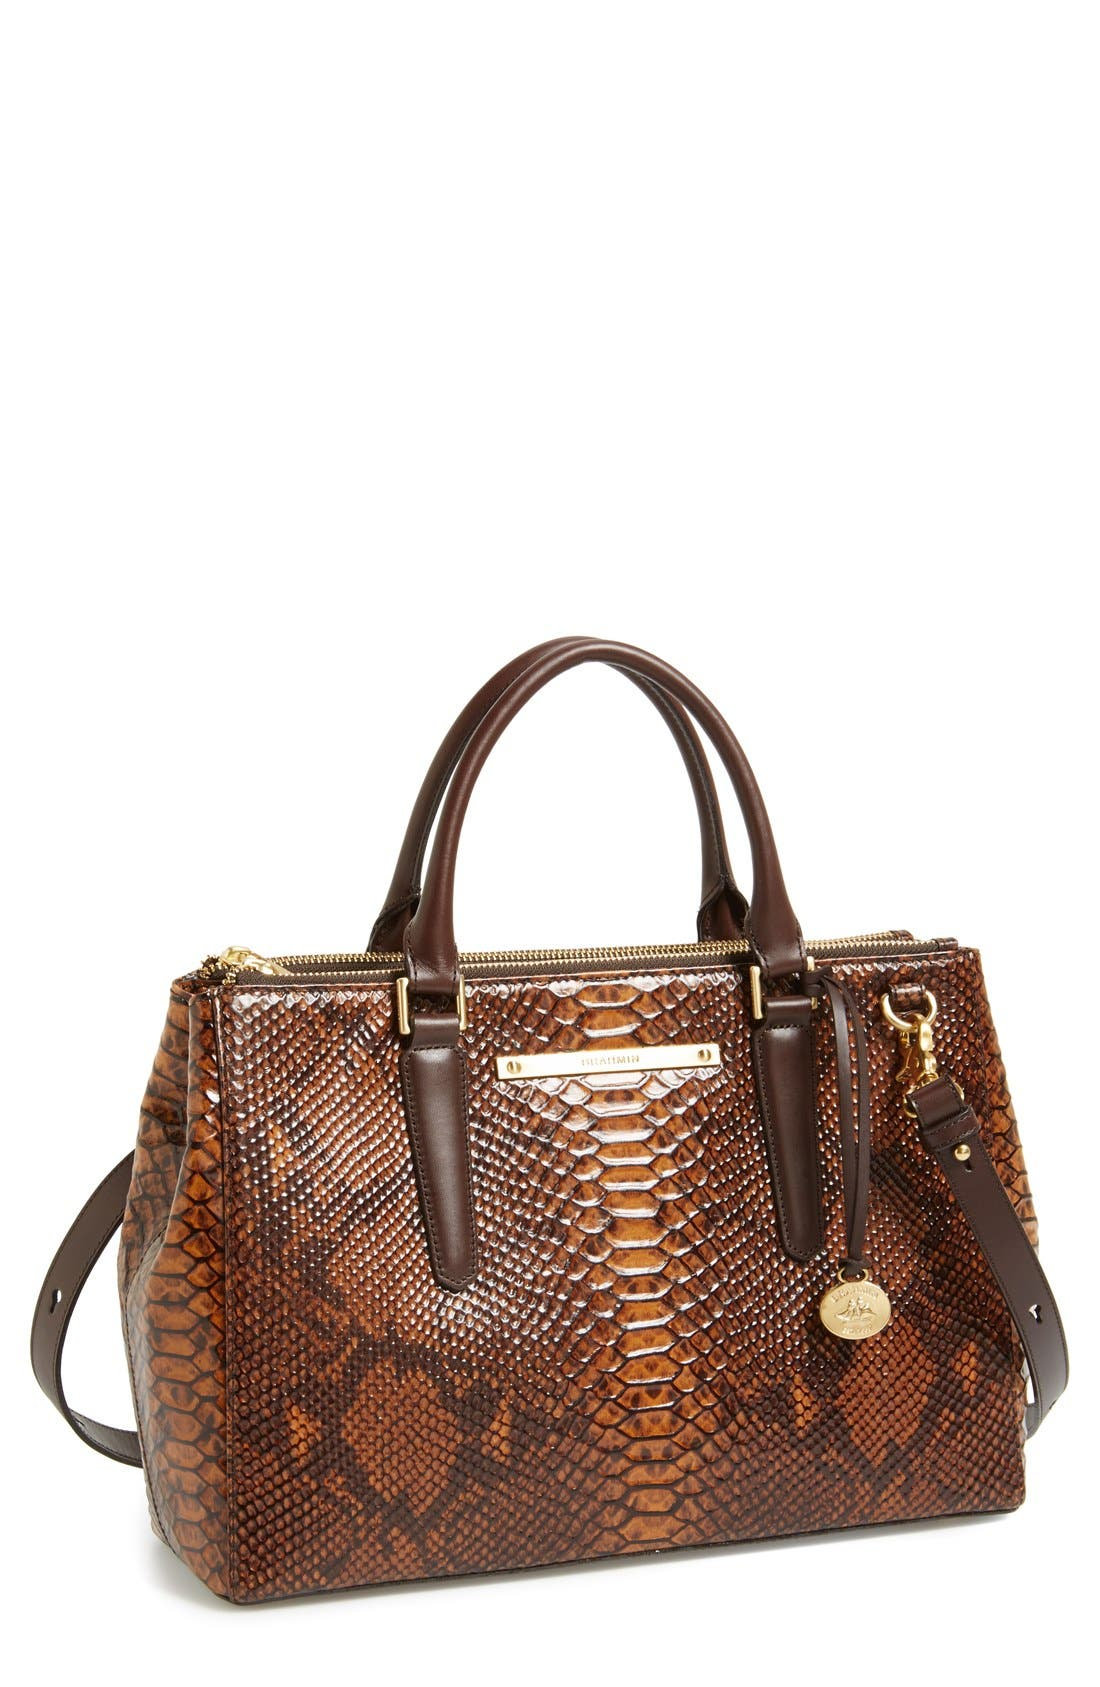 Alternate Image 1 Selected - Brahmin 'Small Lincoln' Leather Shopper